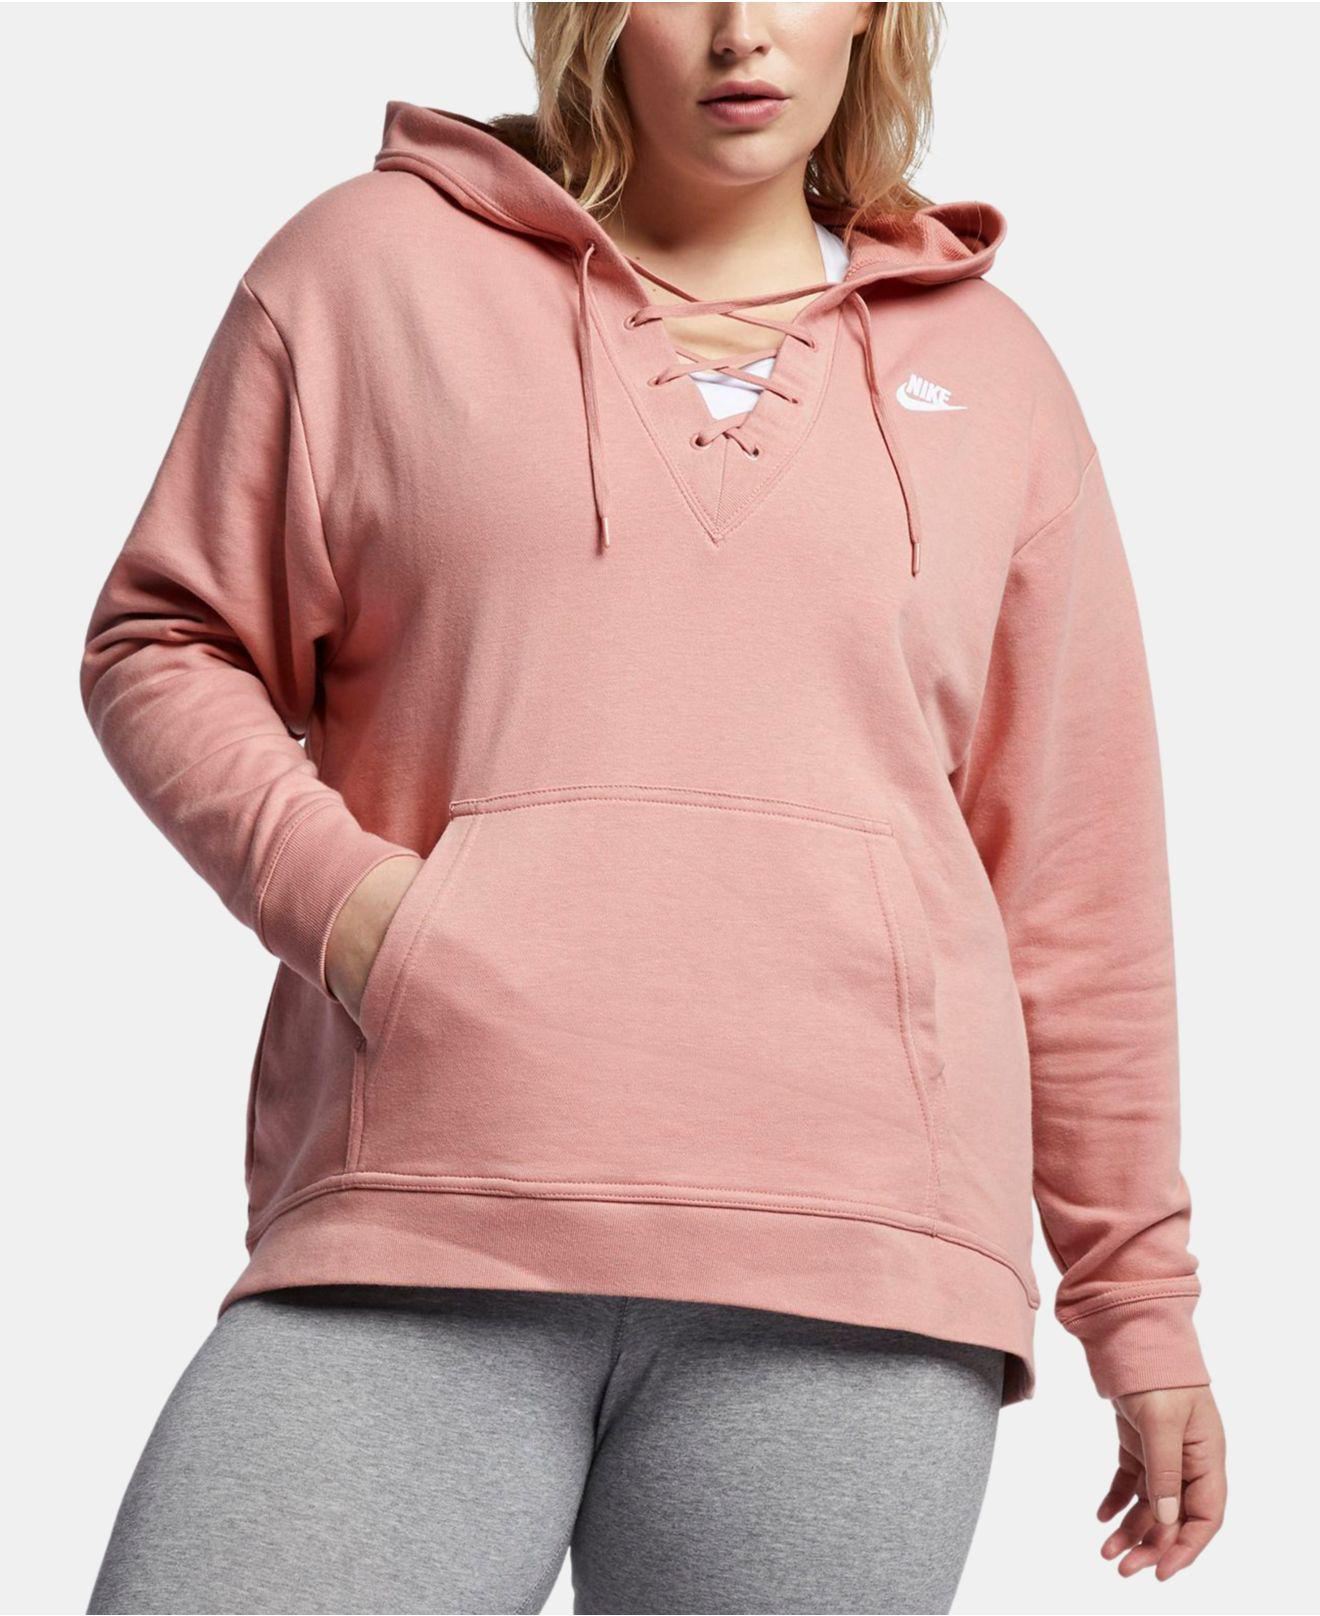 4d8e453ccc587 Lyst - Nike Plus Size Sportswear Lace-up Hoodie in Pink